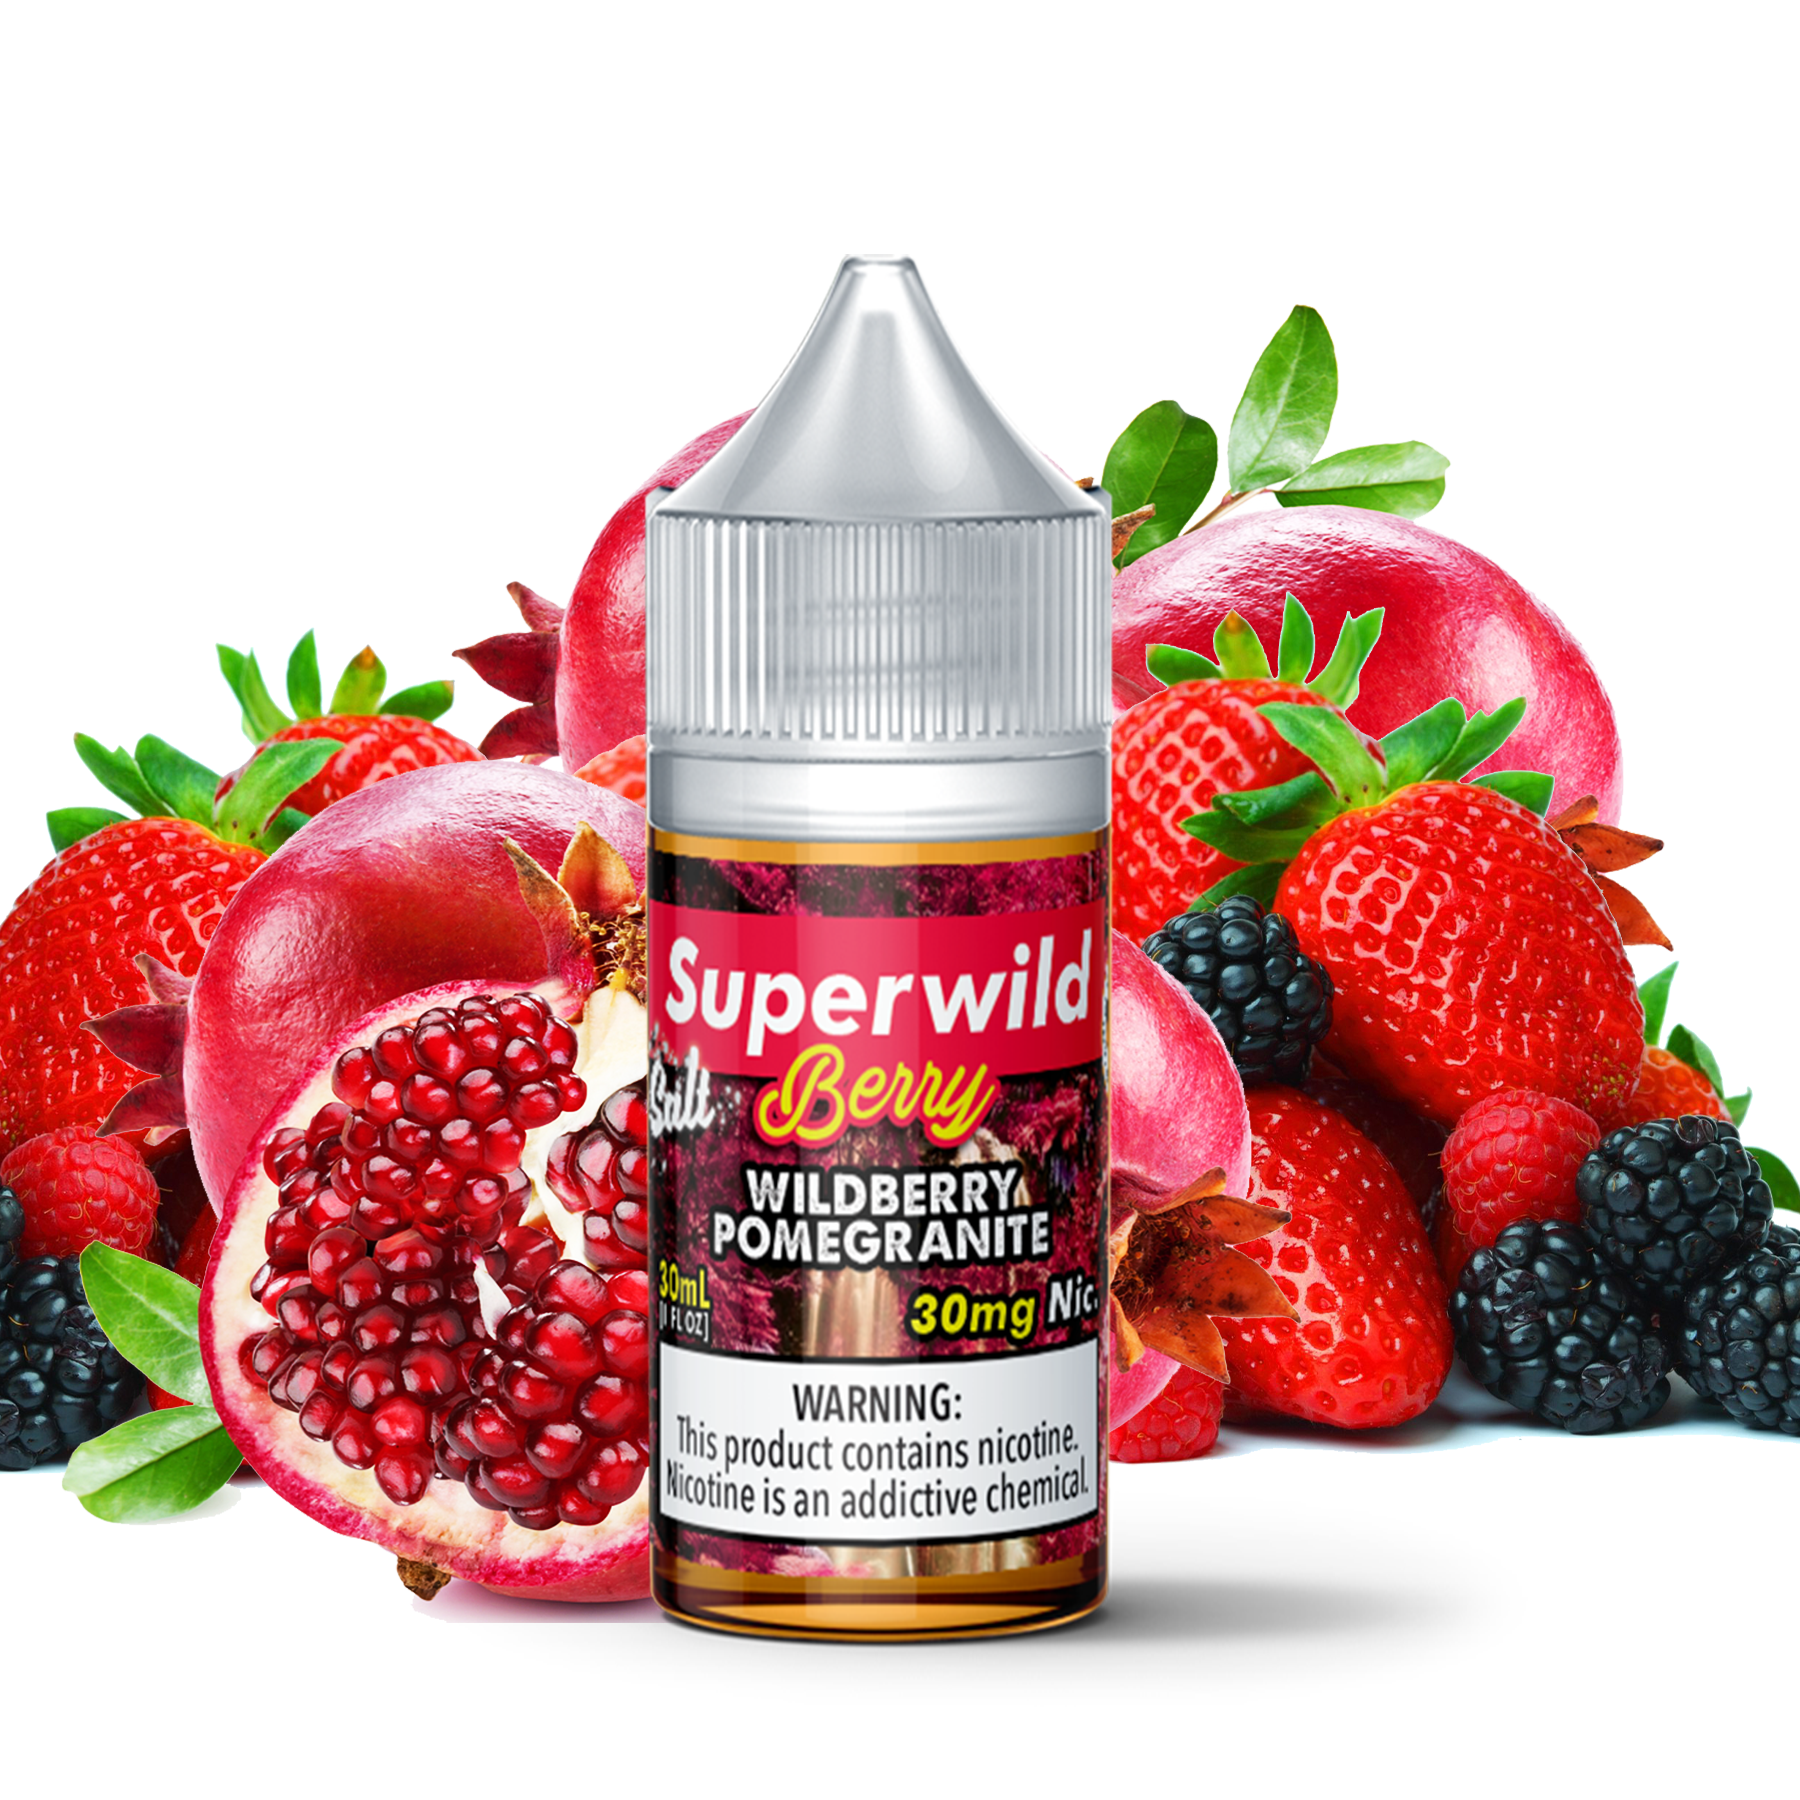 Superwild Berry Pomegranate Salt 30mL